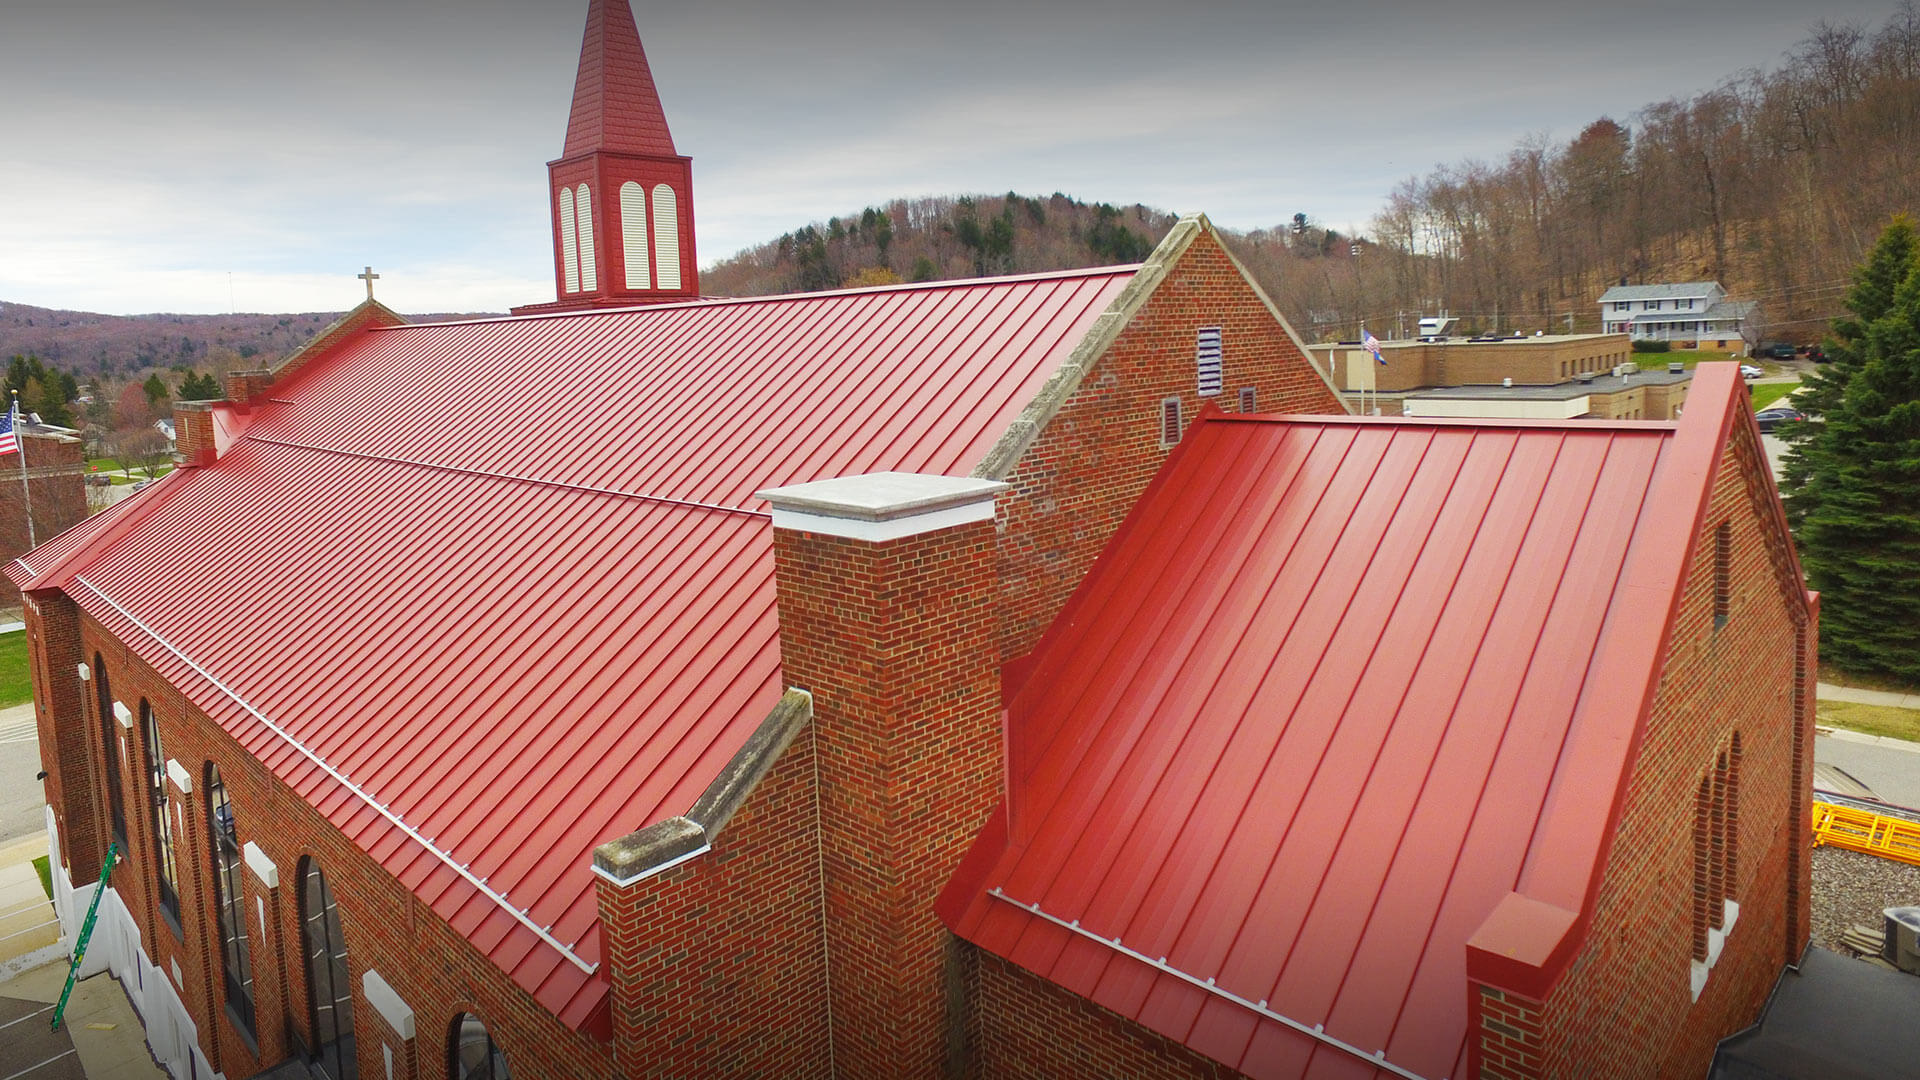 Red metal roof on a Catholic Church.